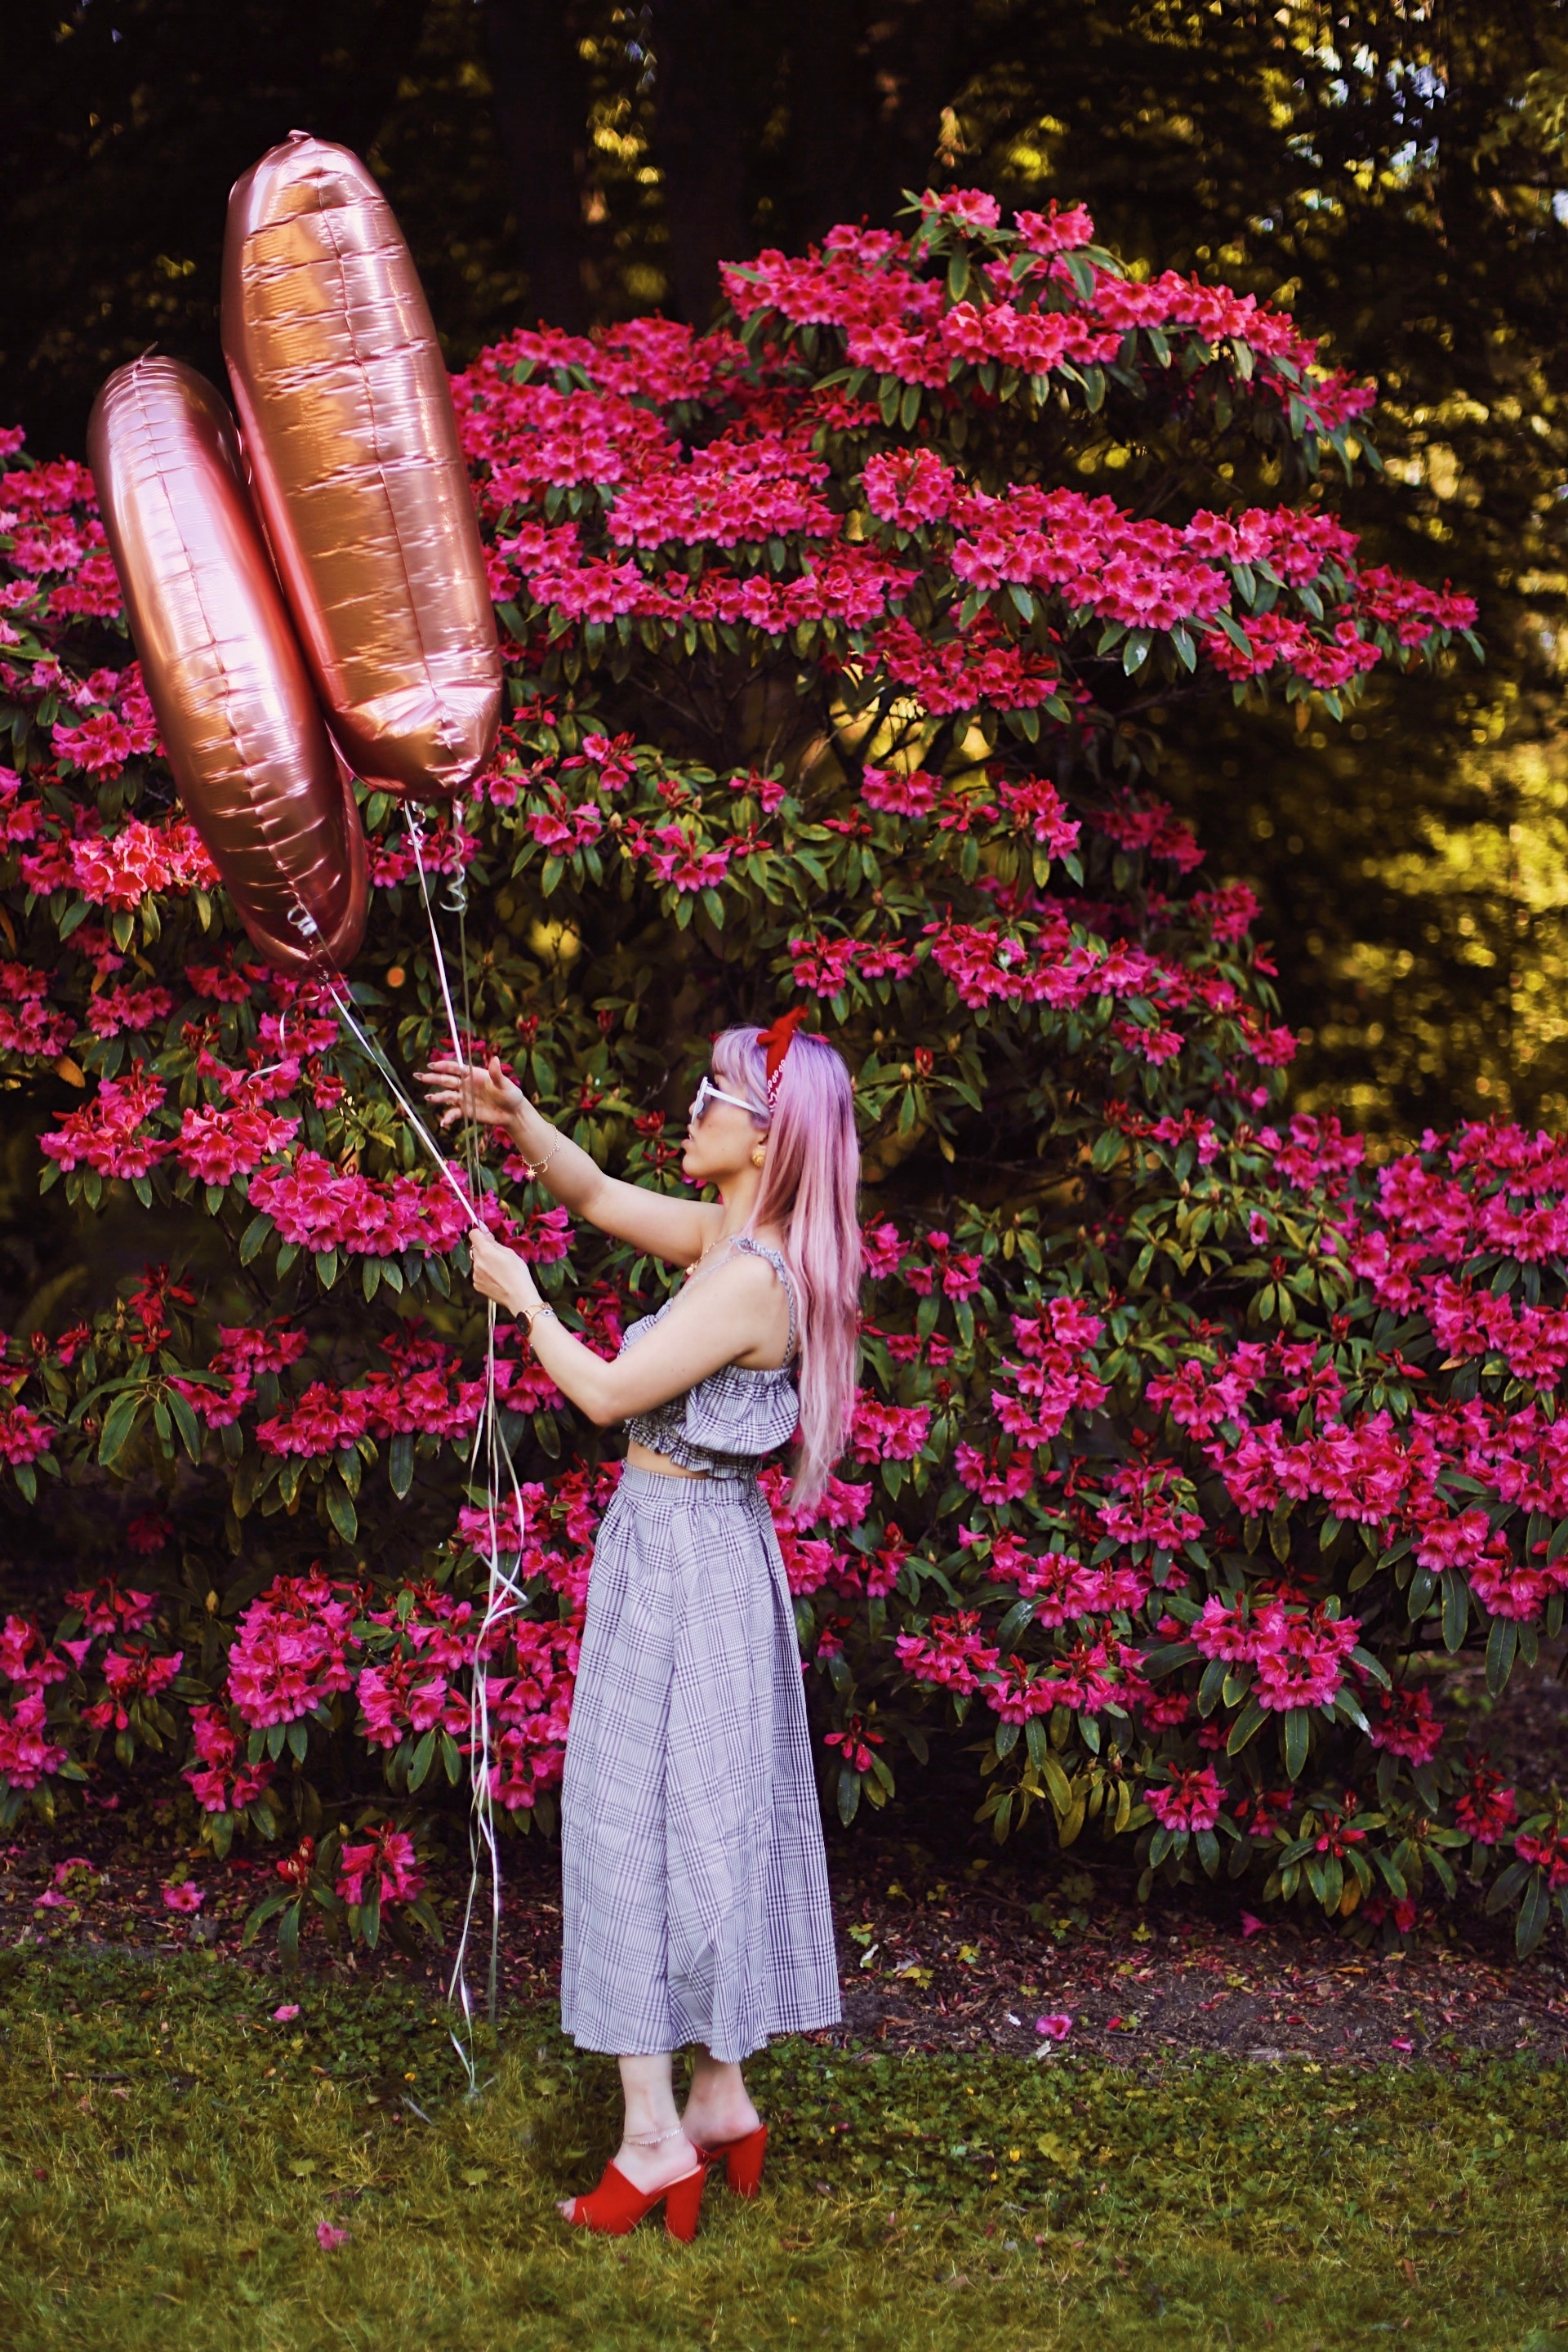 Aika's Love Closet-Seattle Style Life Style Blogger-Japanese-10 Year Anniversary-living in America-what I've learned from Living Abroad-life lessons-pink hair-zero uv heart sunglasses-rose gold balloons-smile 5